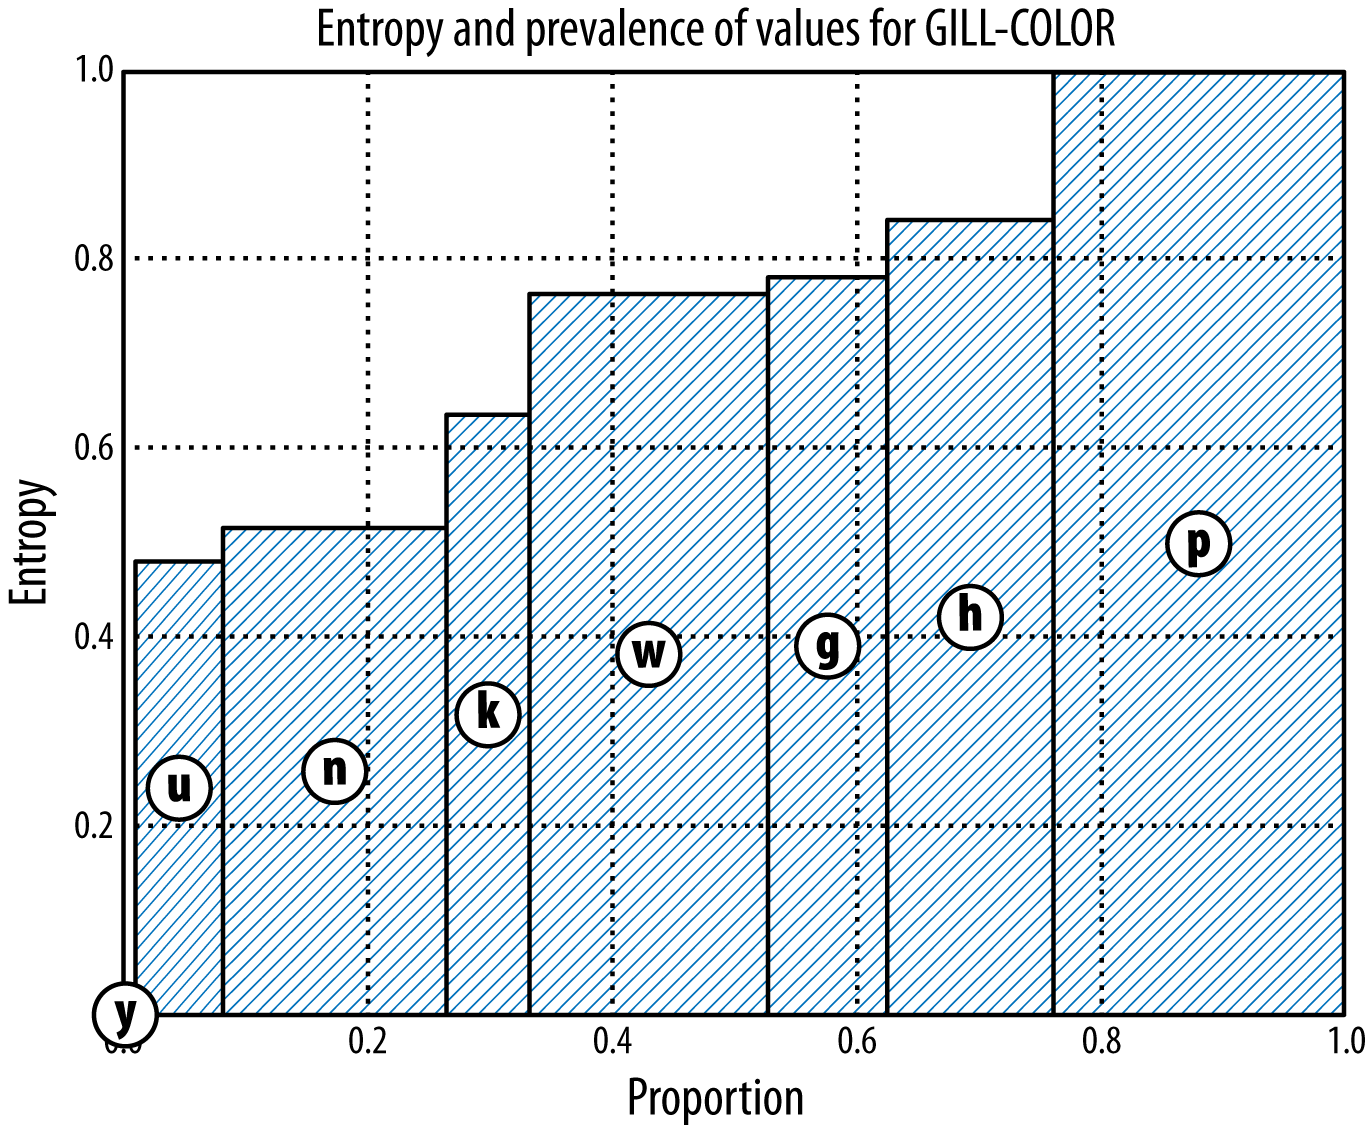 Figure 3-7. Entropy chart for the Mushroom dataset as split by GILL-COLOR.